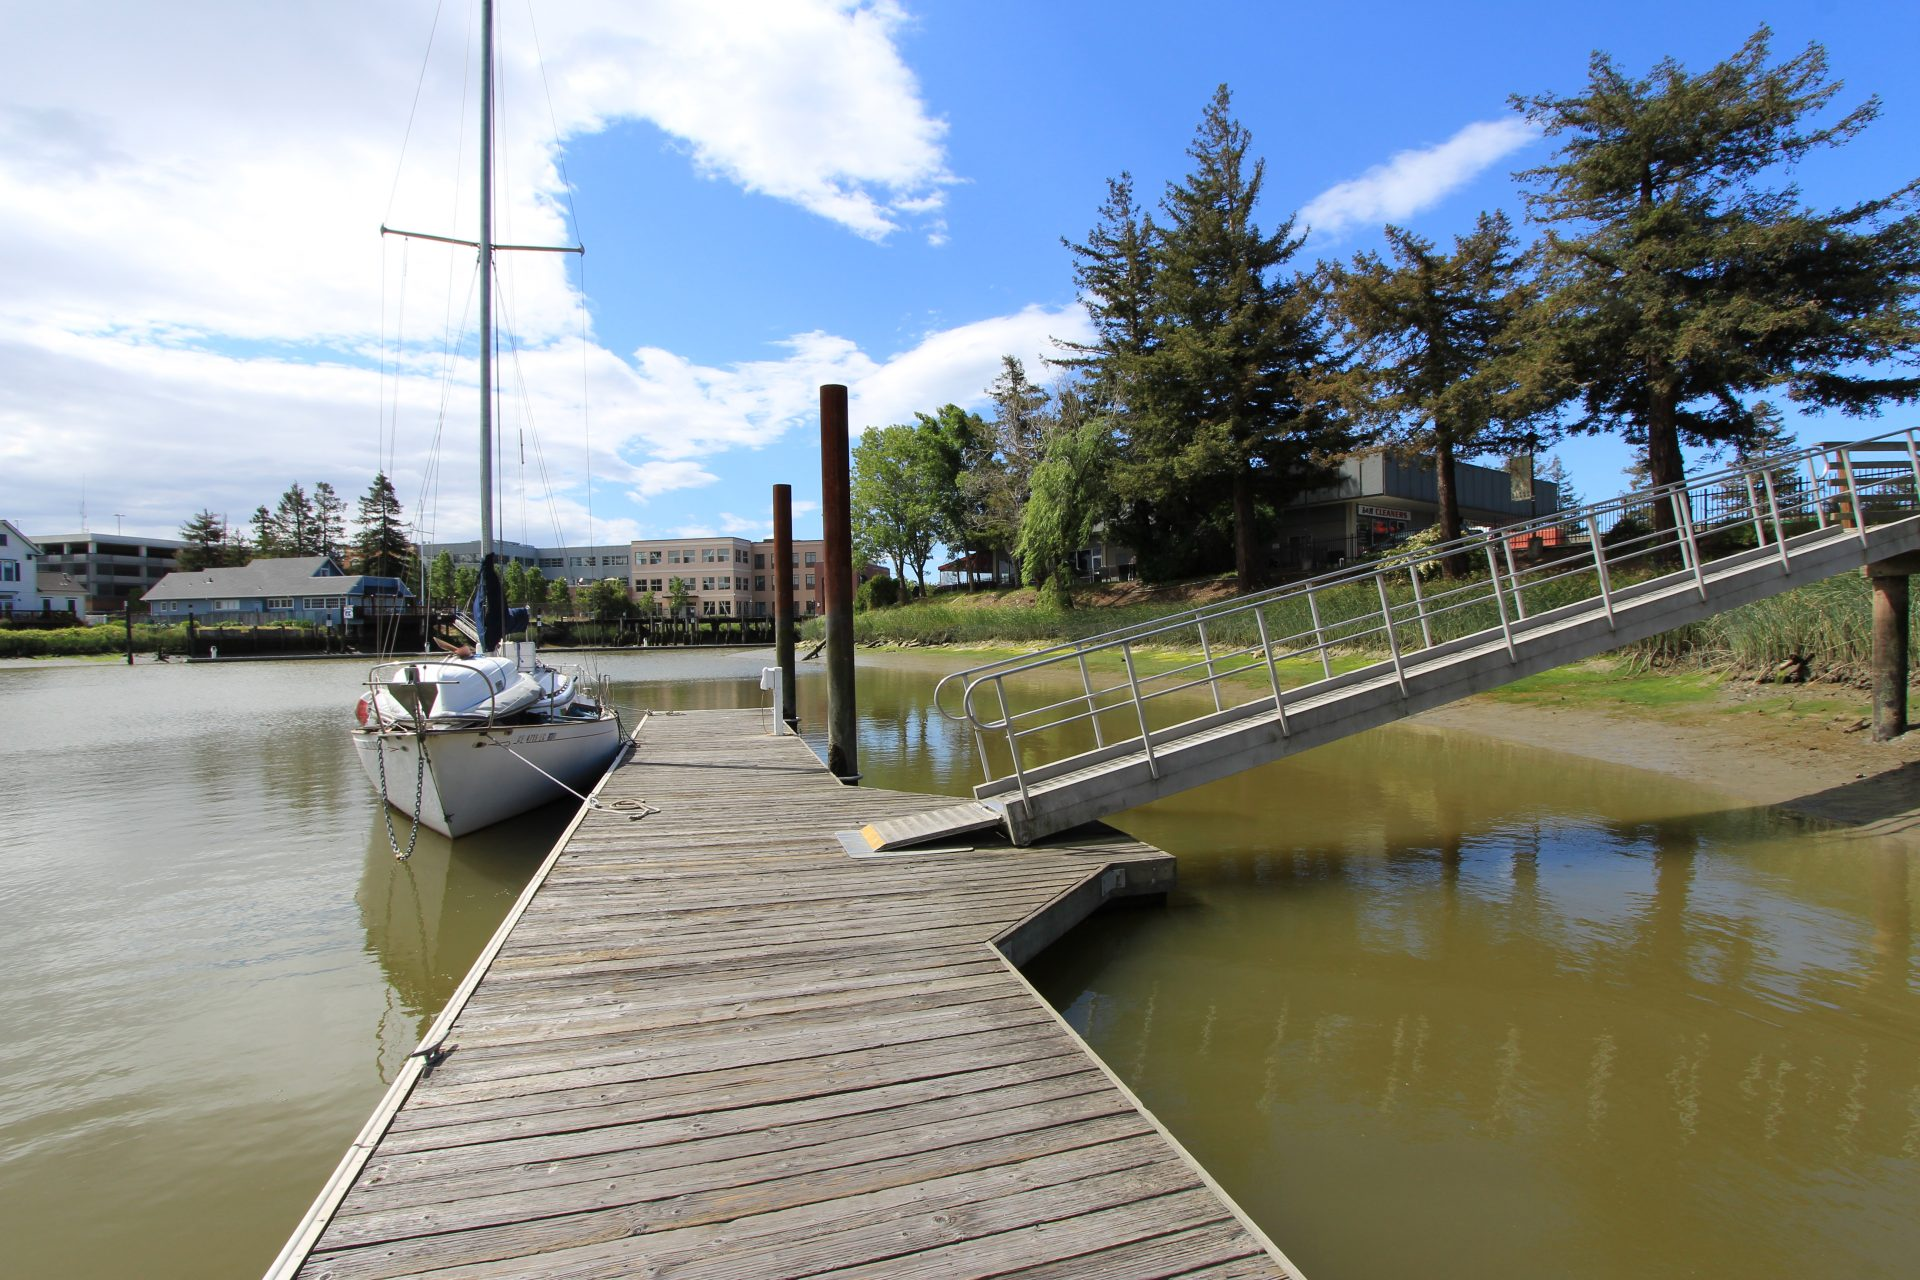 ramp down to dock, with small sailboat moored to dock